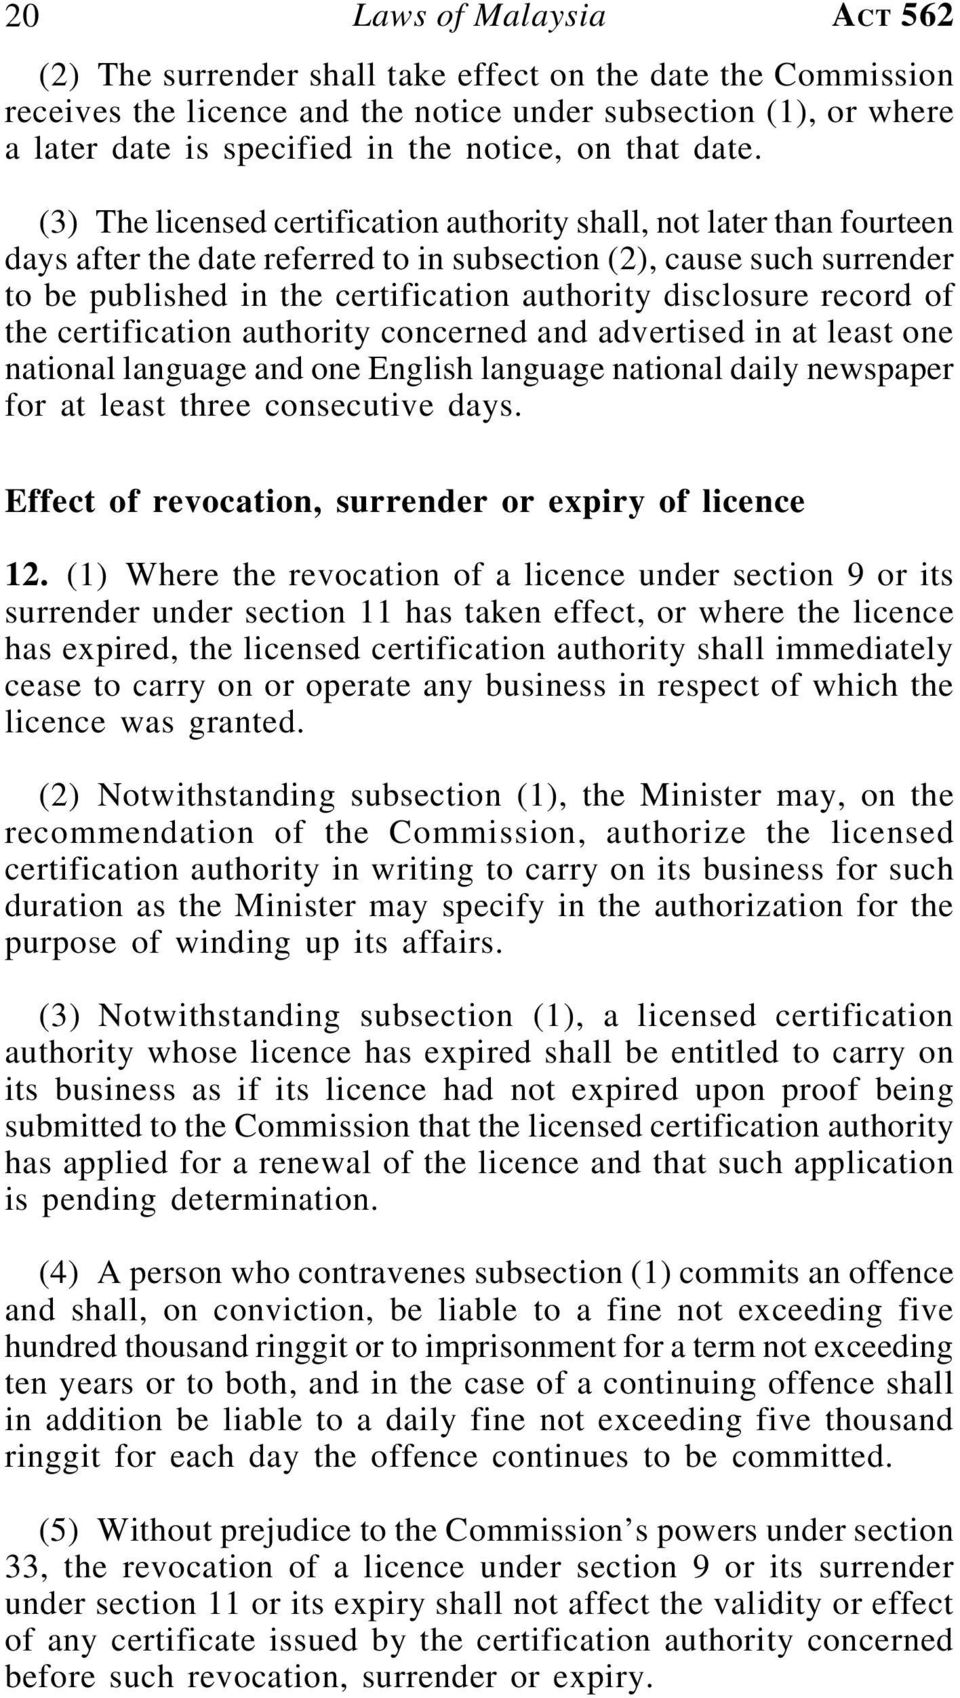 (3) The licensed certification authority shall, not later than fourteen days after the date referred to in subsection (2), cause such surrender to be published in the certification authority